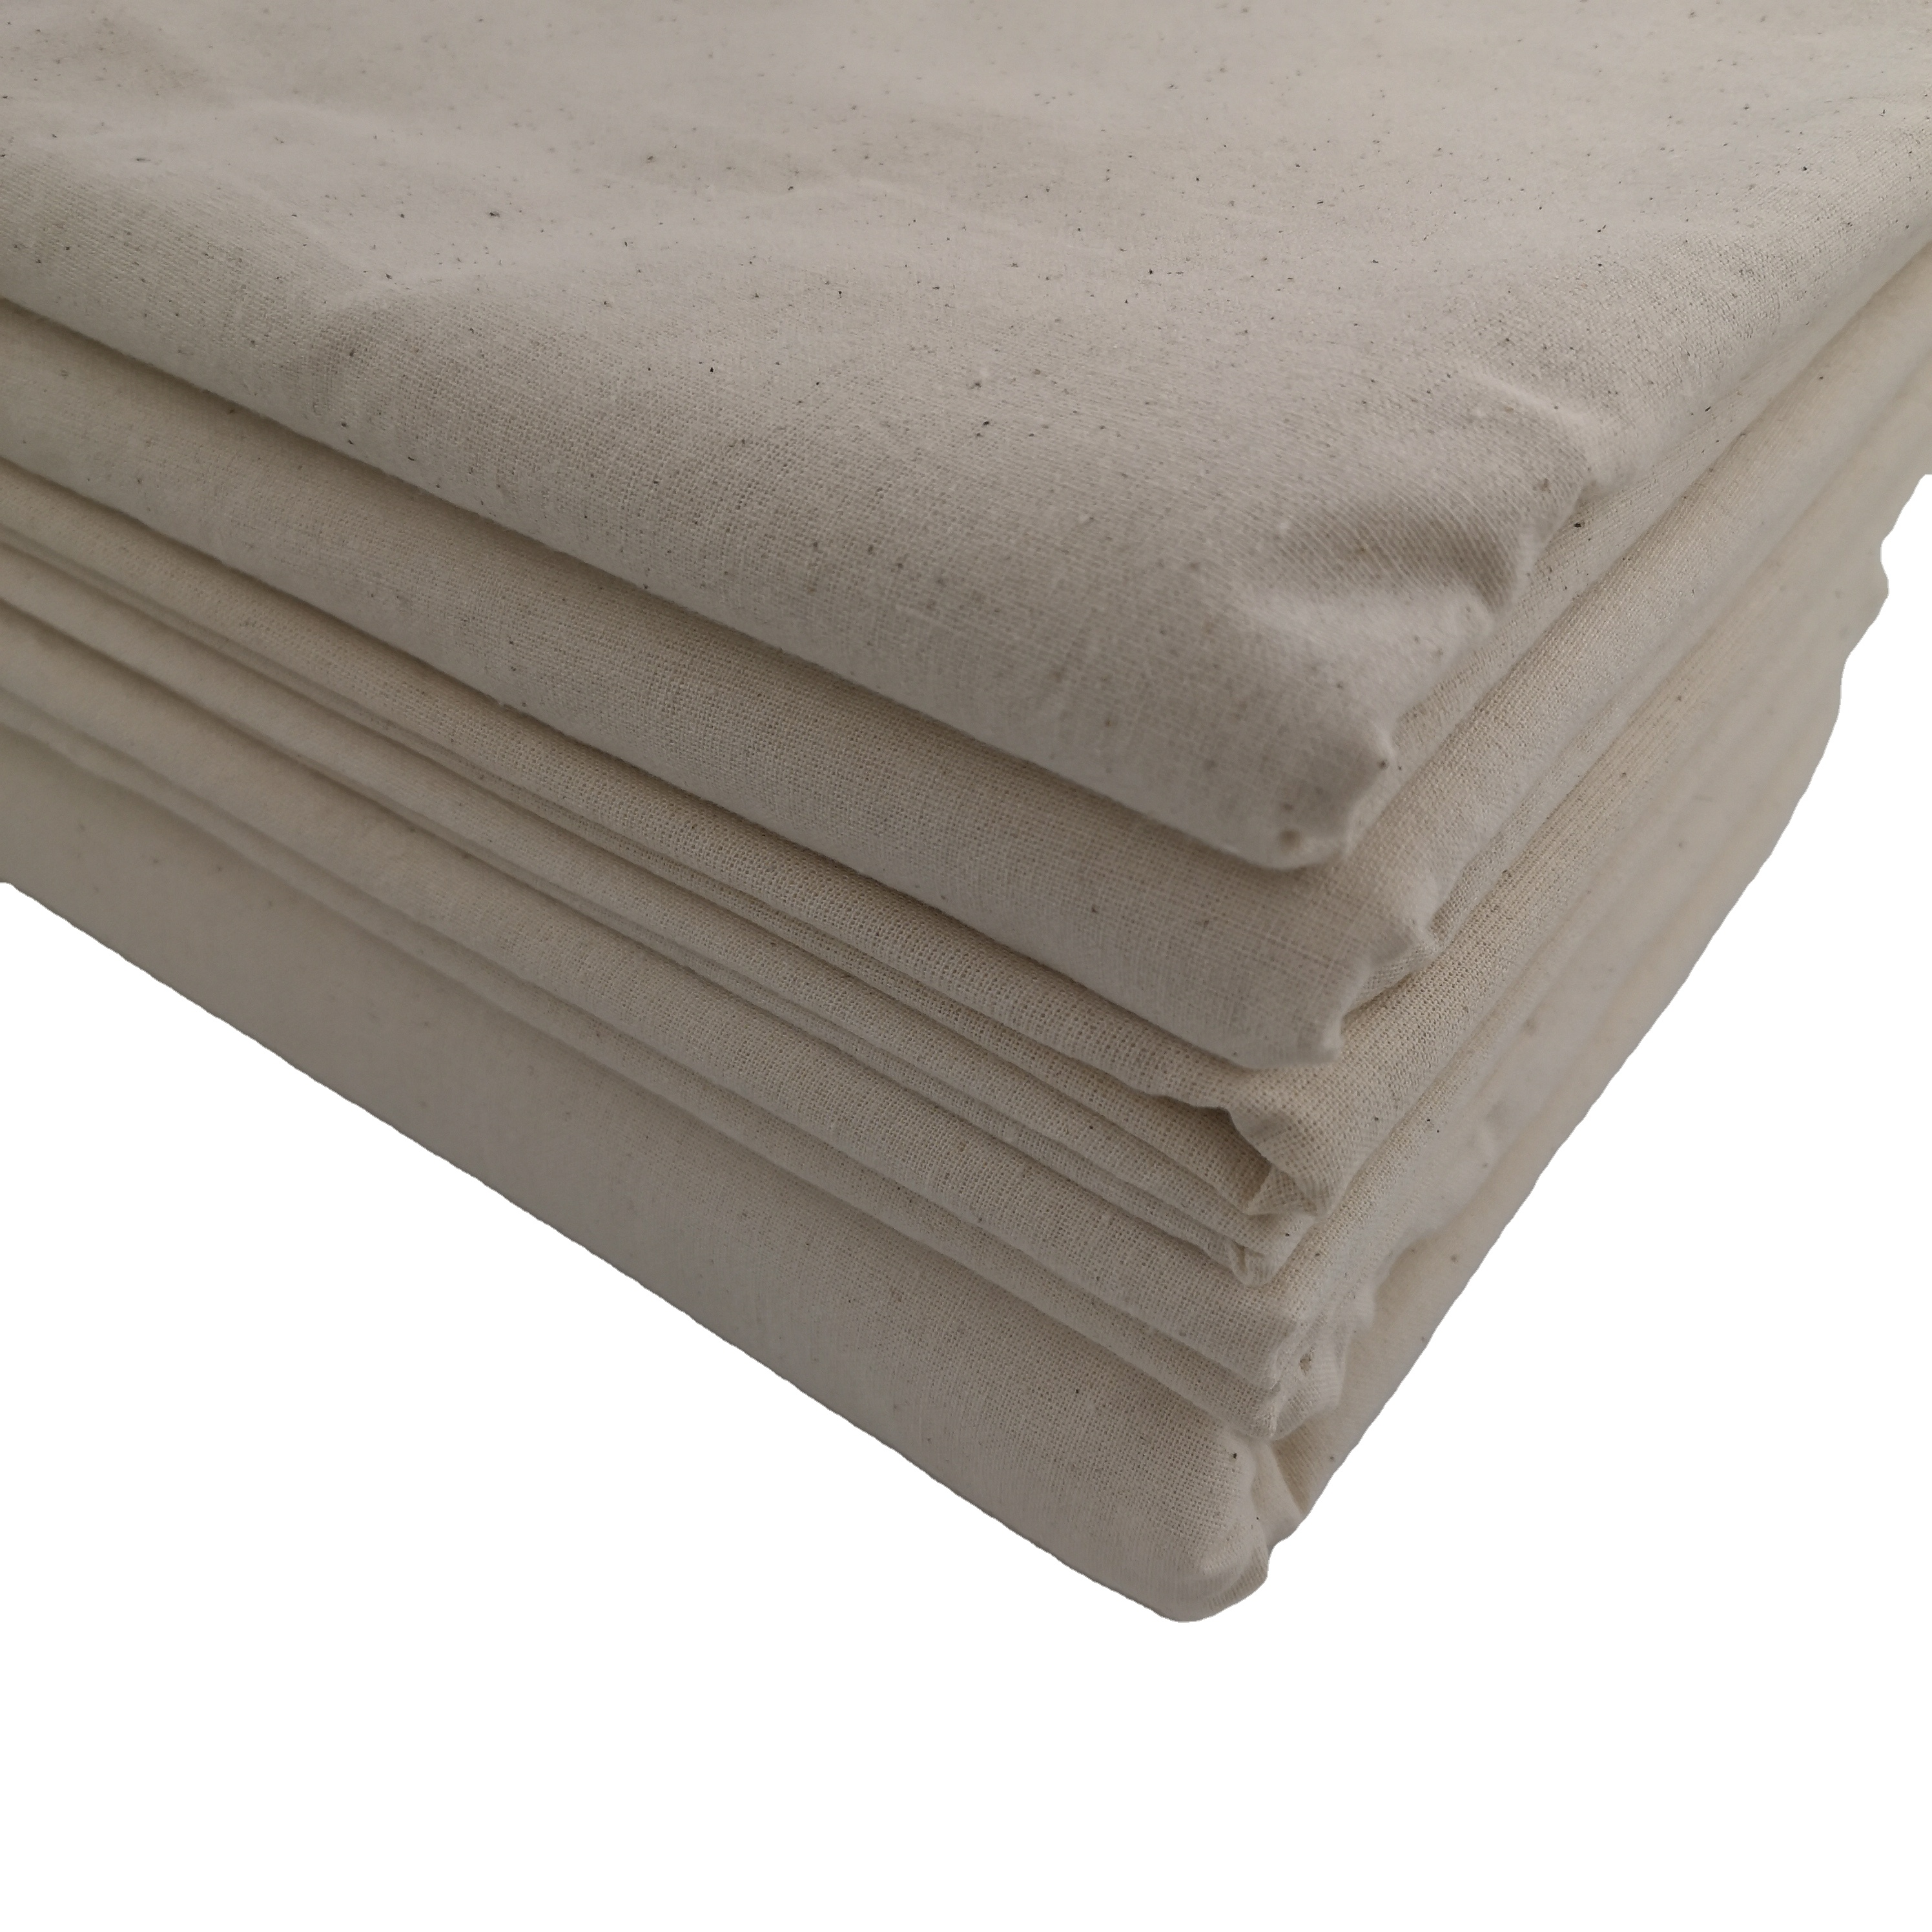 Grey fabric polyester cotton 96*72 and 110*76 for garments pocket lining fabrics